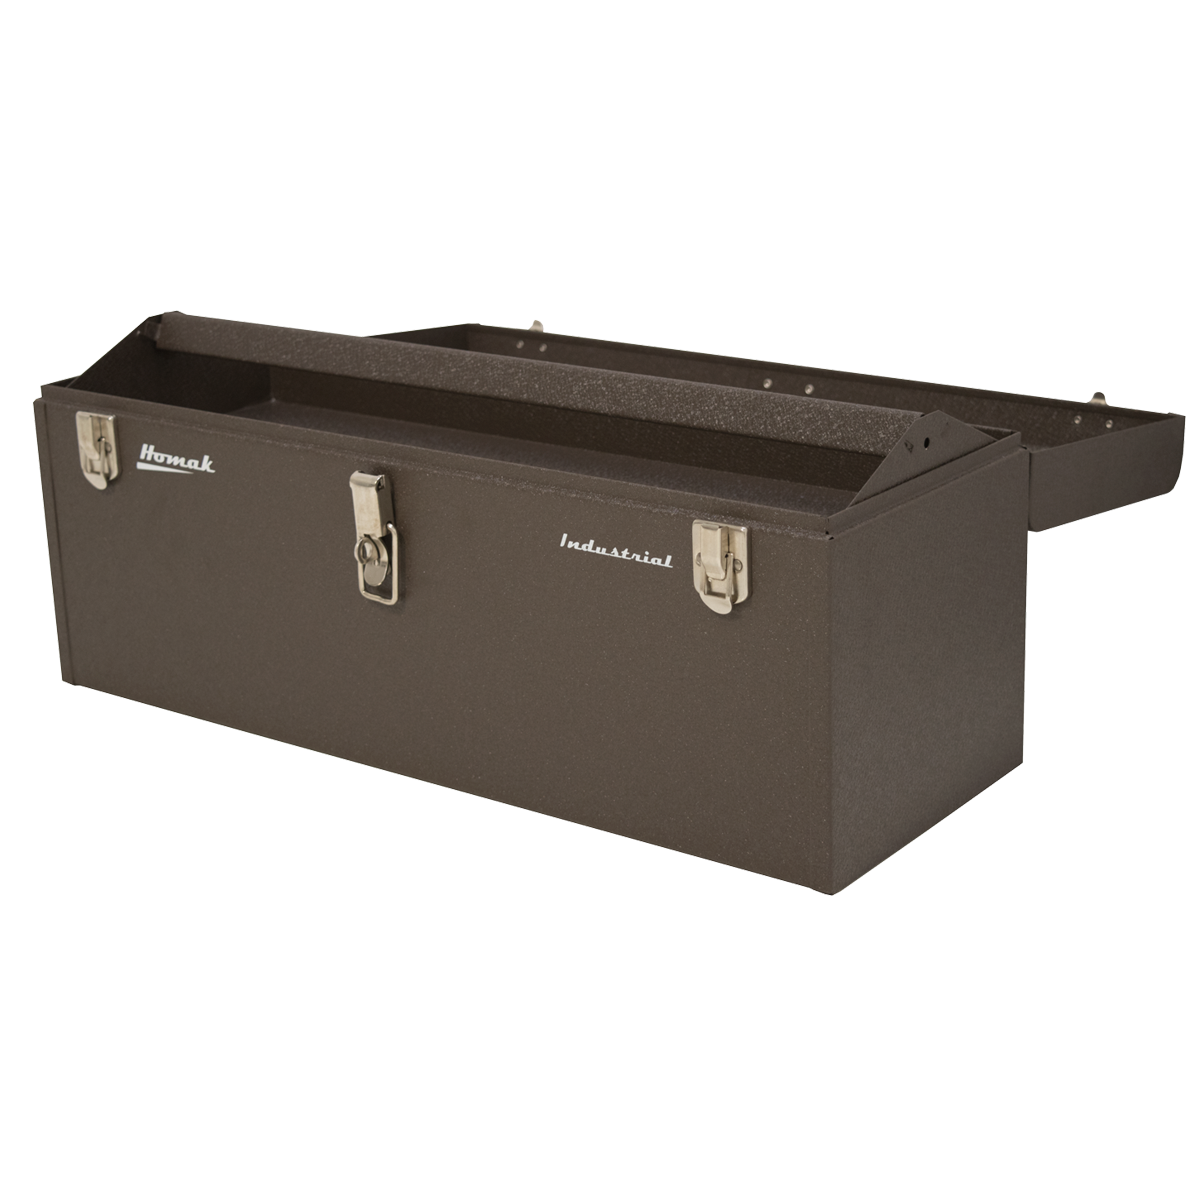 Toolbox drawing cantilever. Industrial homak manufacturing